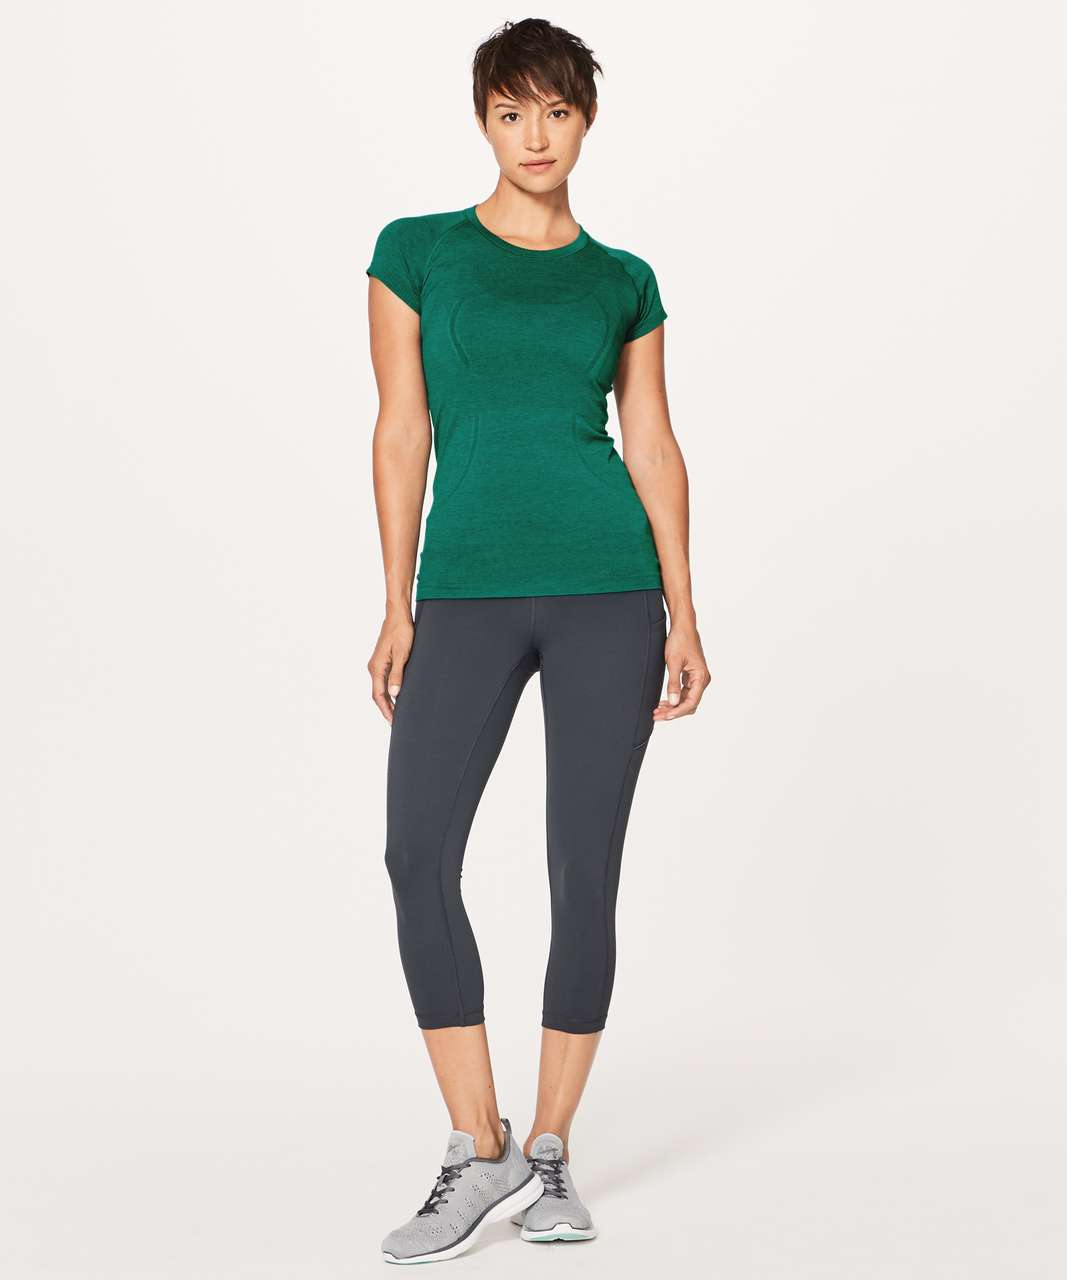 Lululemon Swiftly Tech Short Sleeve Crew - Teal Green / Teal Green